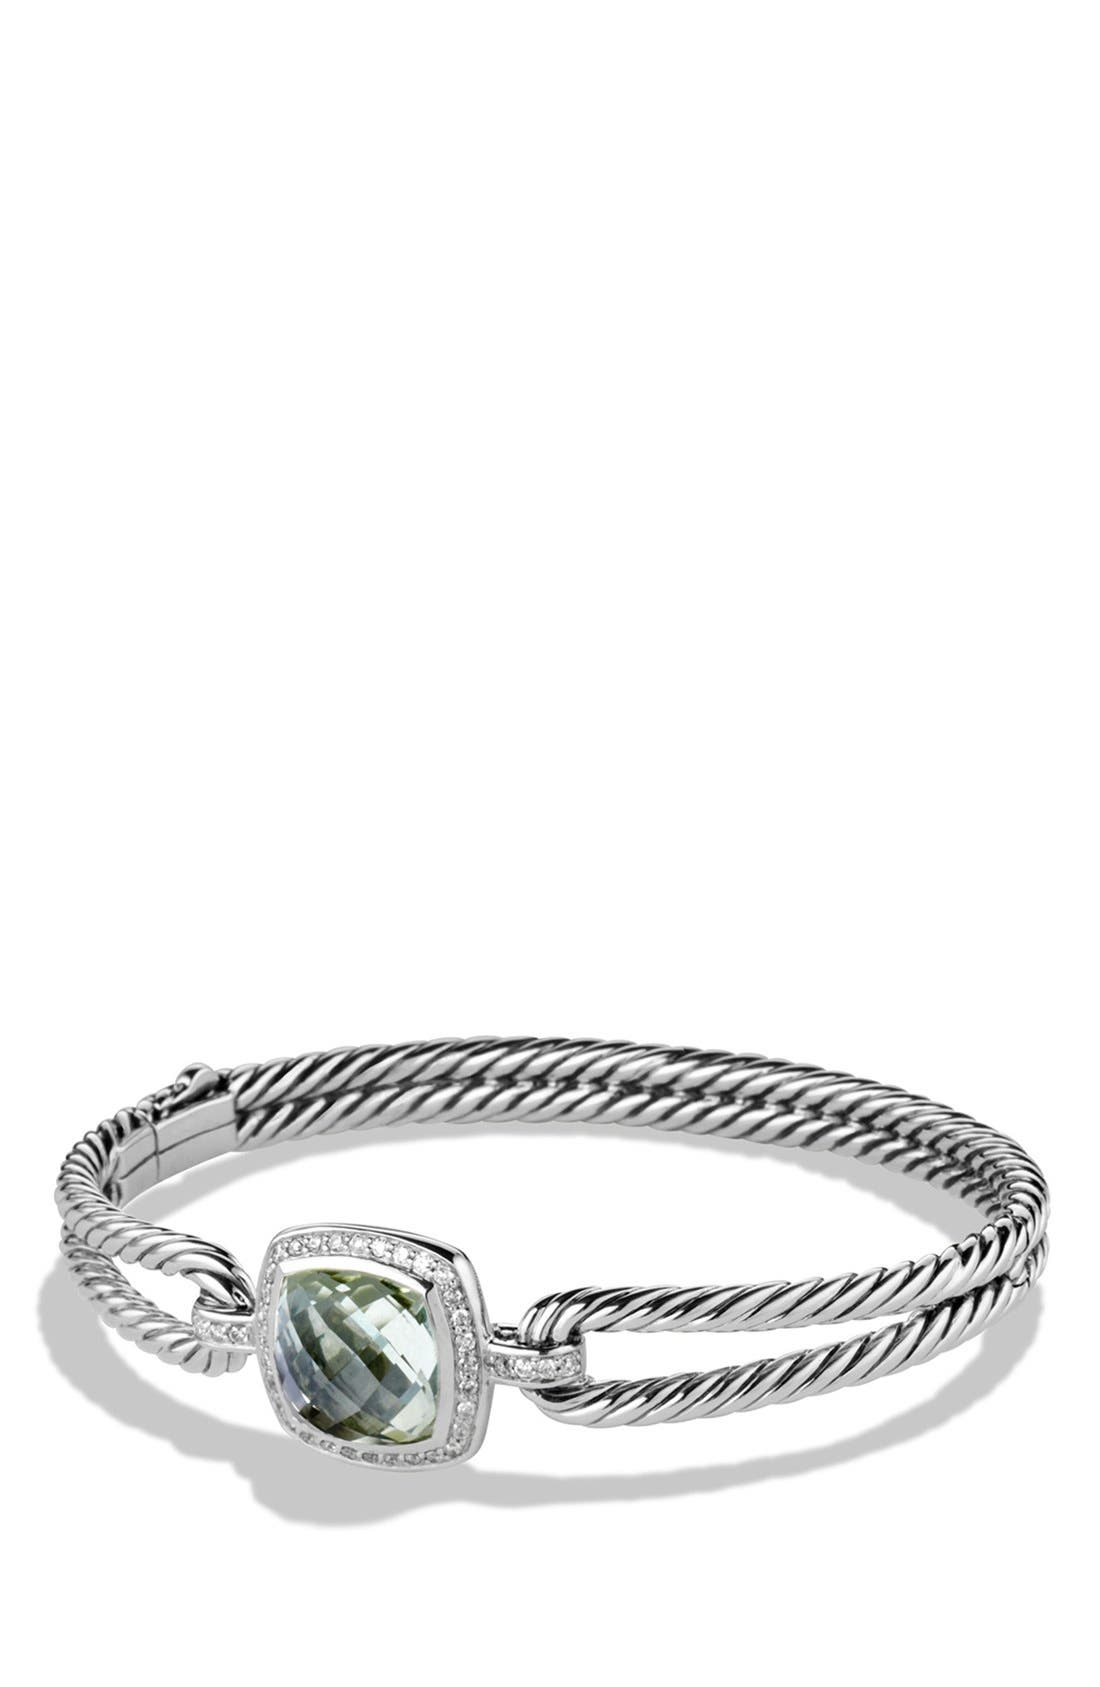 DAVID YURMAN 'Albion' Bracelet with Semiprecious Stone and